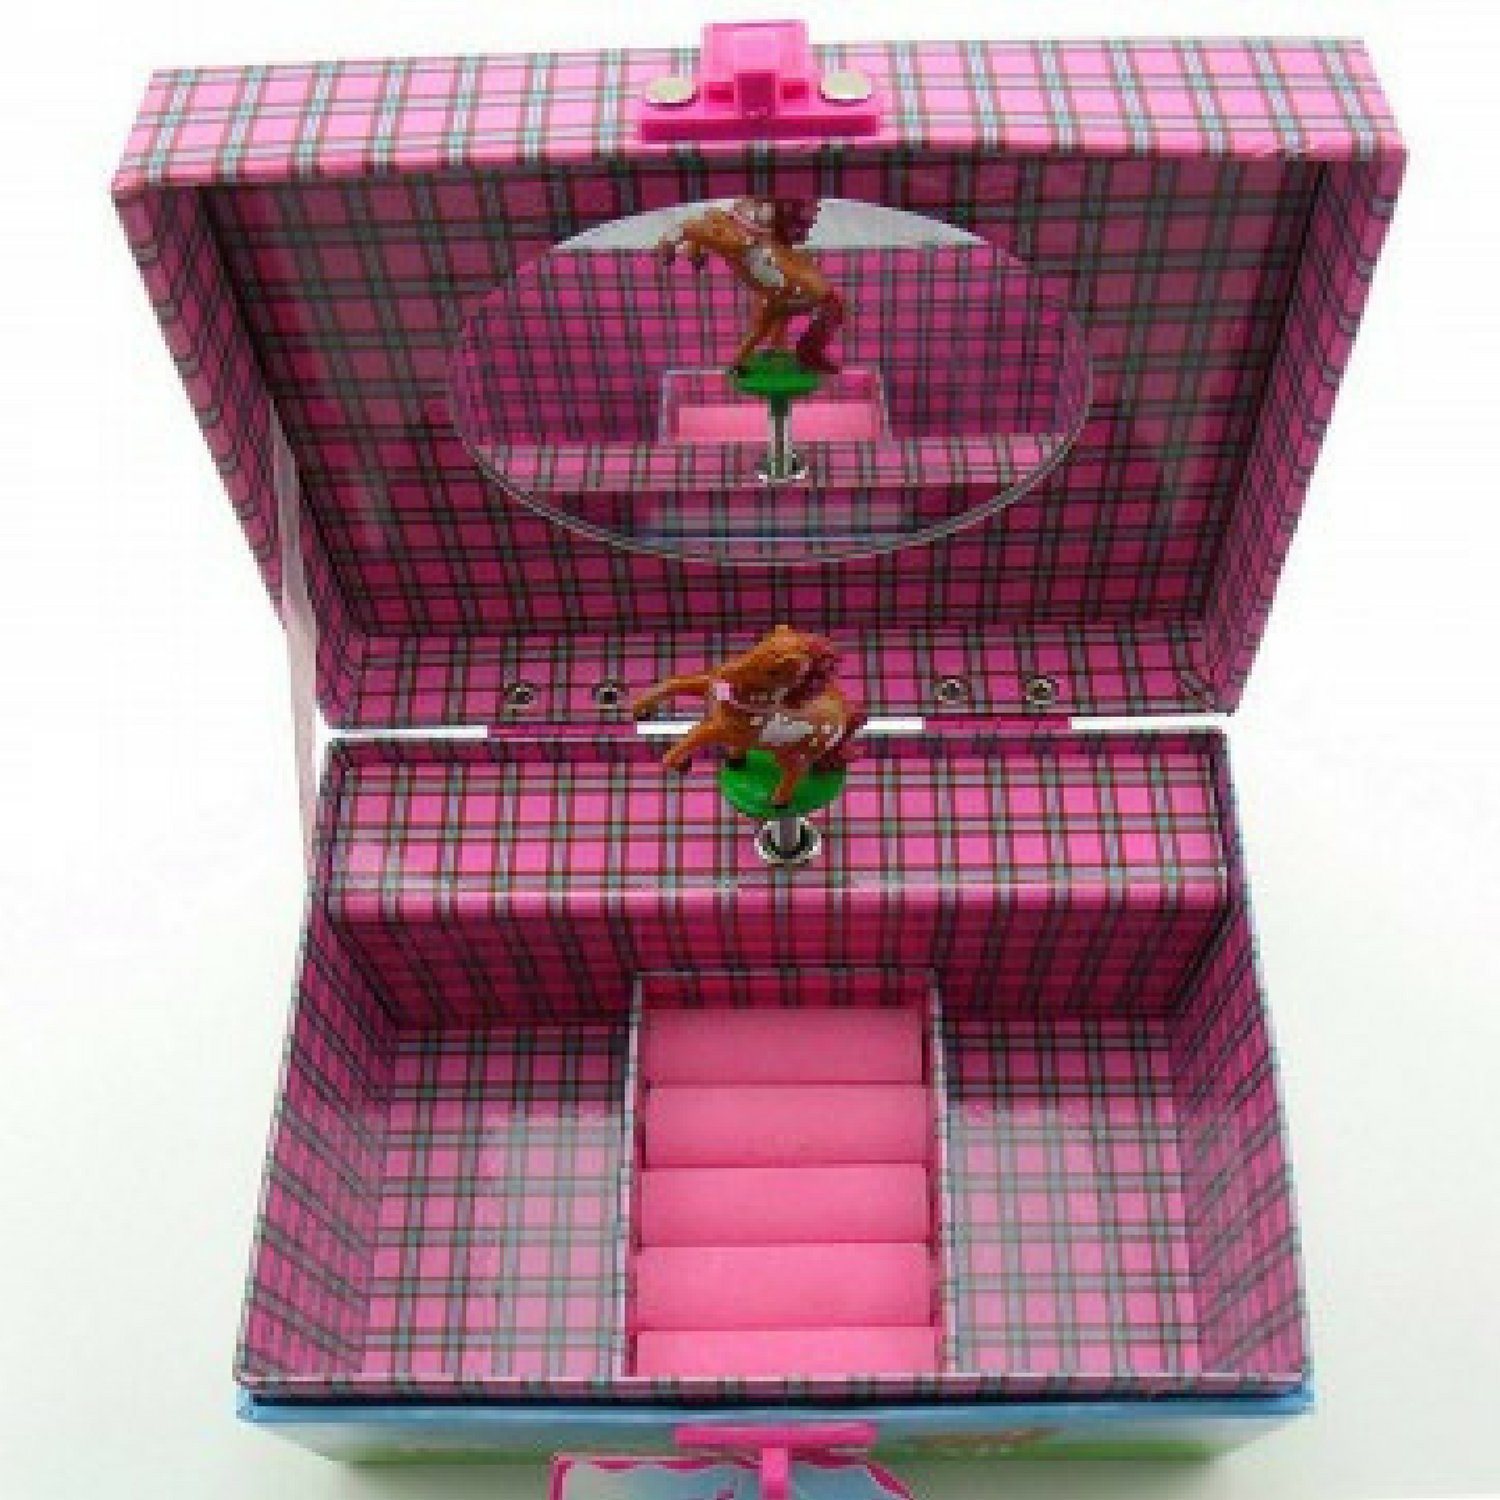 Horse Musical Jewelry Box for Girls - Beautiful Musical Necklace Box that comes with a Free Cool Gifts Yellow Necklace - The Perfect Girl Gifts for Cowgirls and Horse Lovers by BoomBoxHub (Image #4)